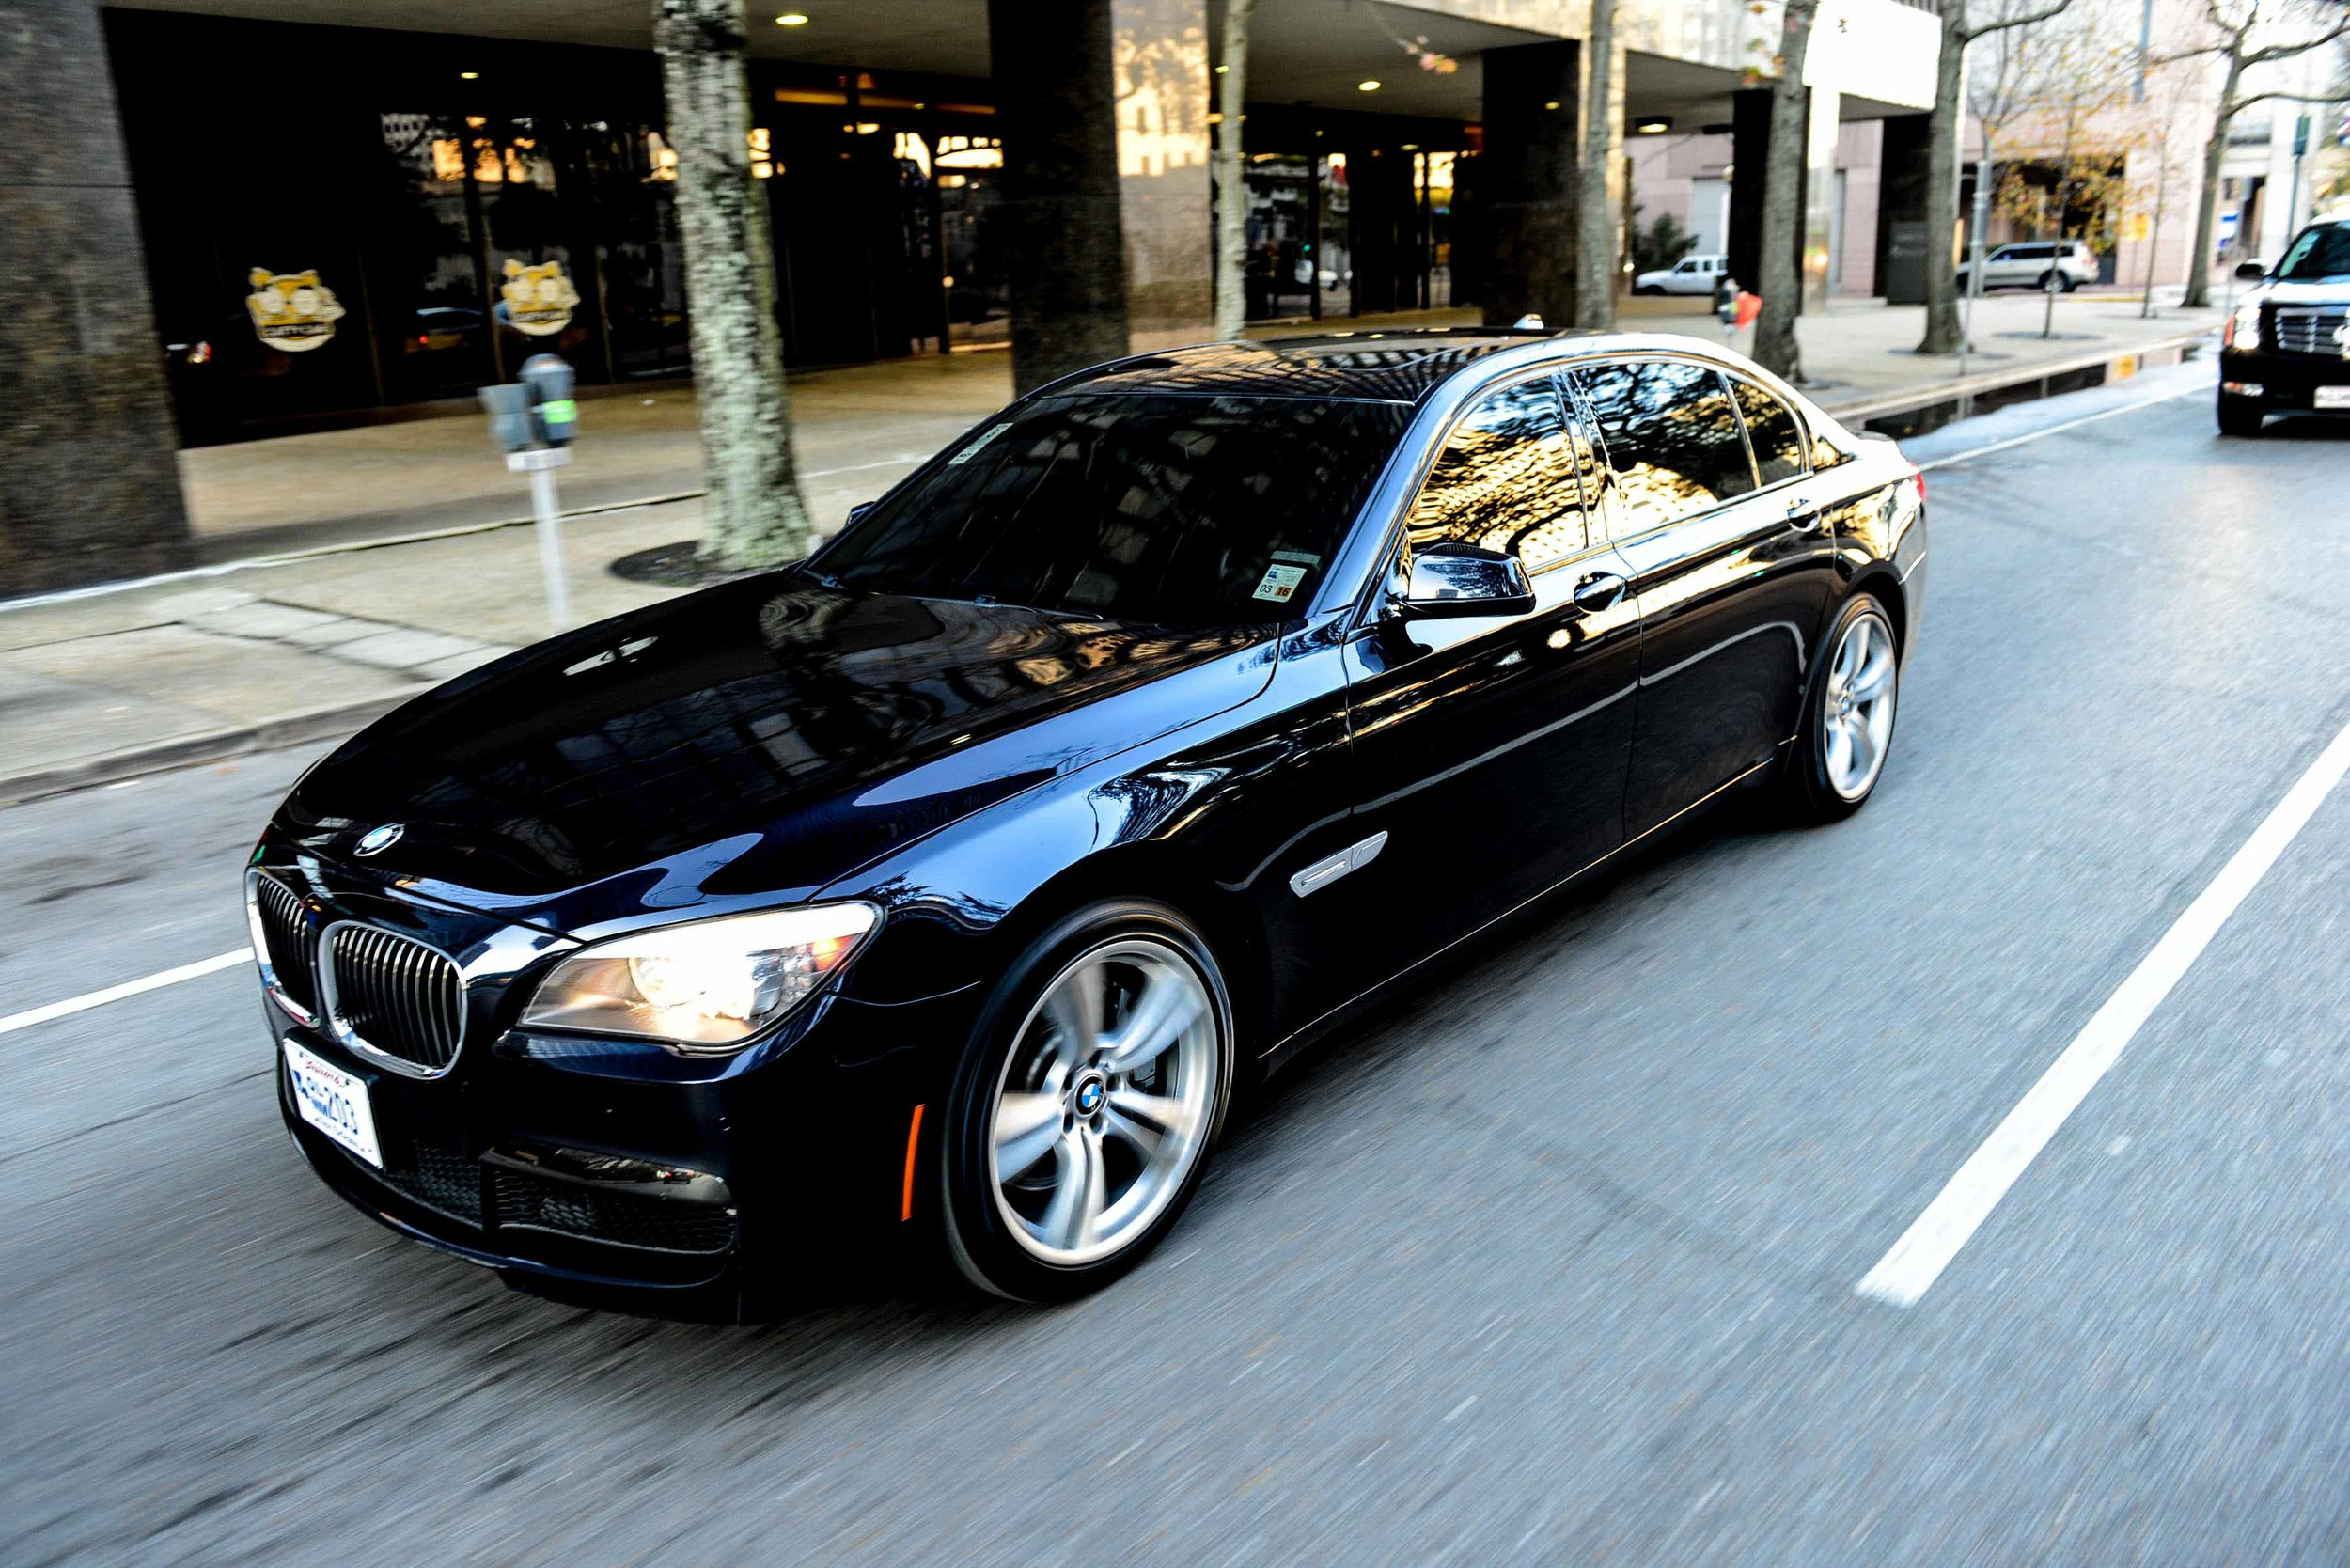 Car Service New Orleans_LCS_BMW (5 of 35).jpg